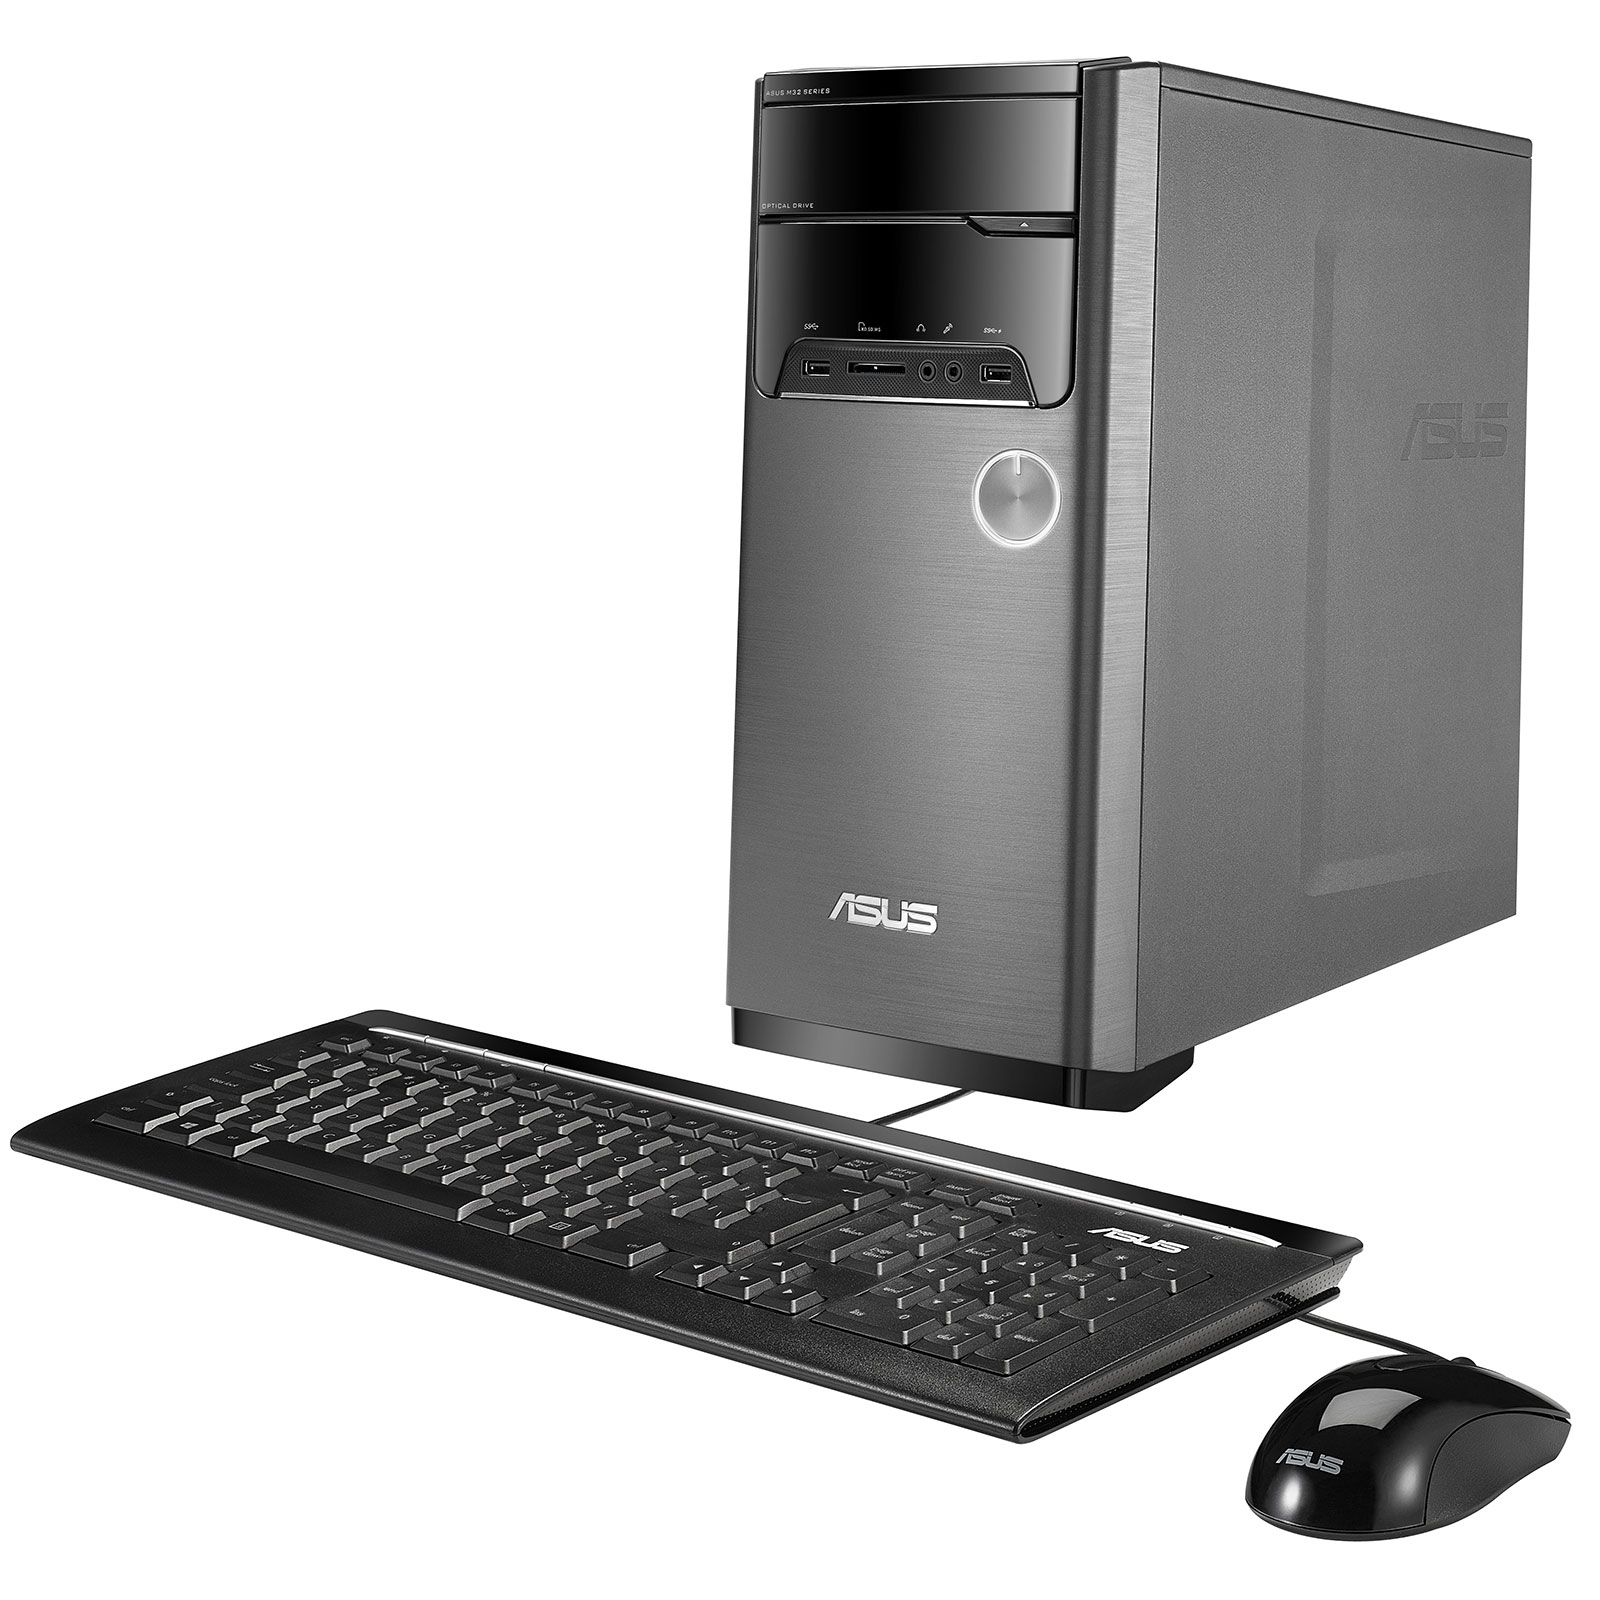 asus m32cd k fr021t pc de bureau asus sur. Black Bedroom Furniture Sets. Home Design Ideas